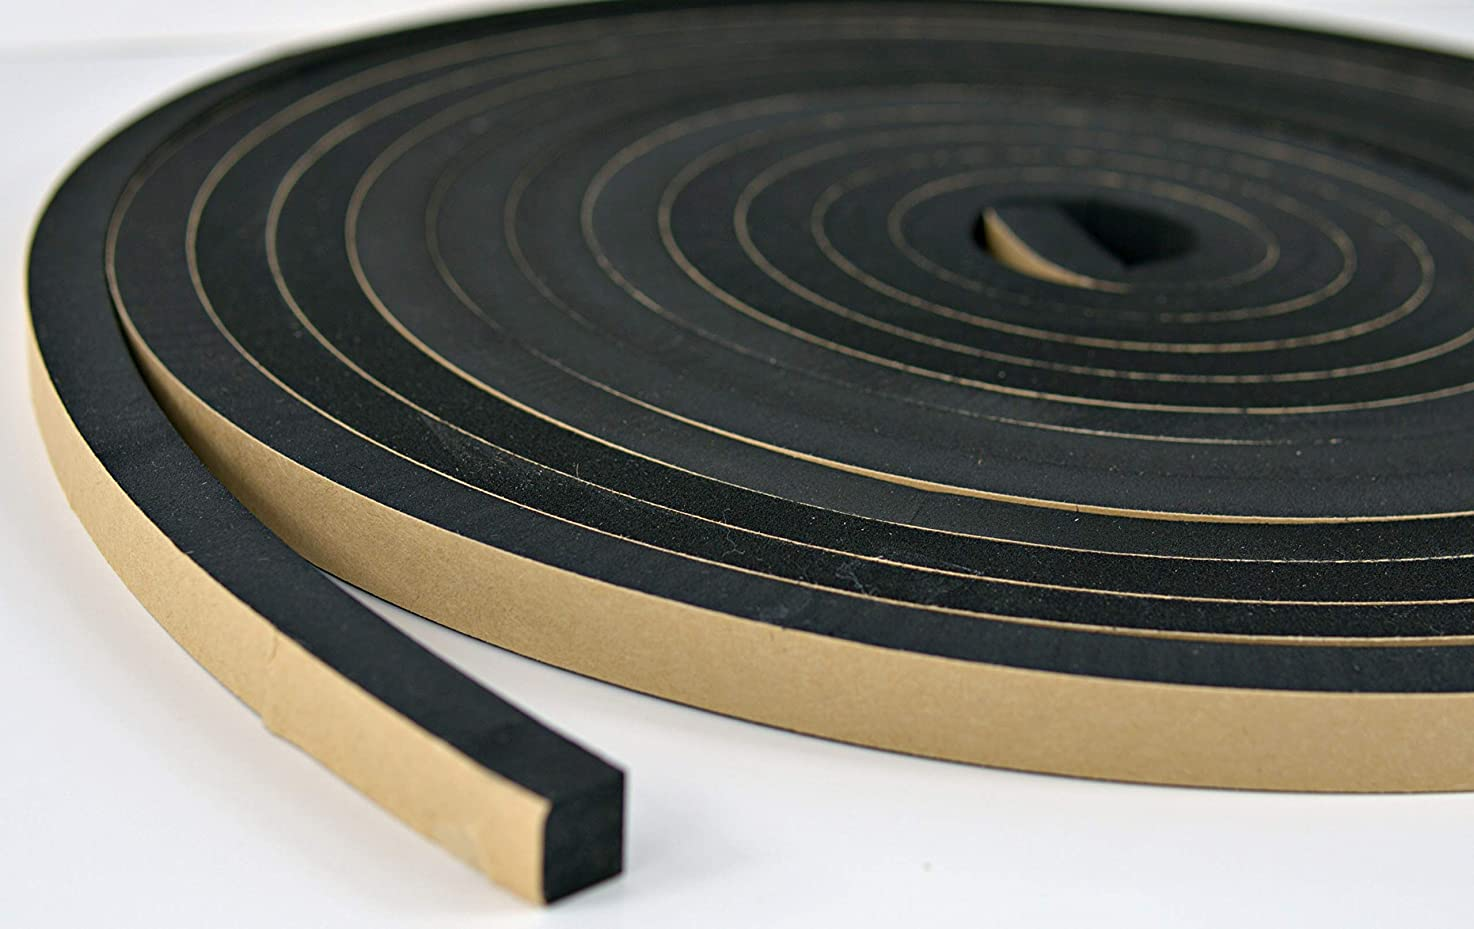 Neoprene Foam Weather Seal High Density Stripping with Adhesive Backing 1/2 Inch Wide 1/2 Inch Thick 25 Feet Long (1/2inch x1/2inch x 25feet)